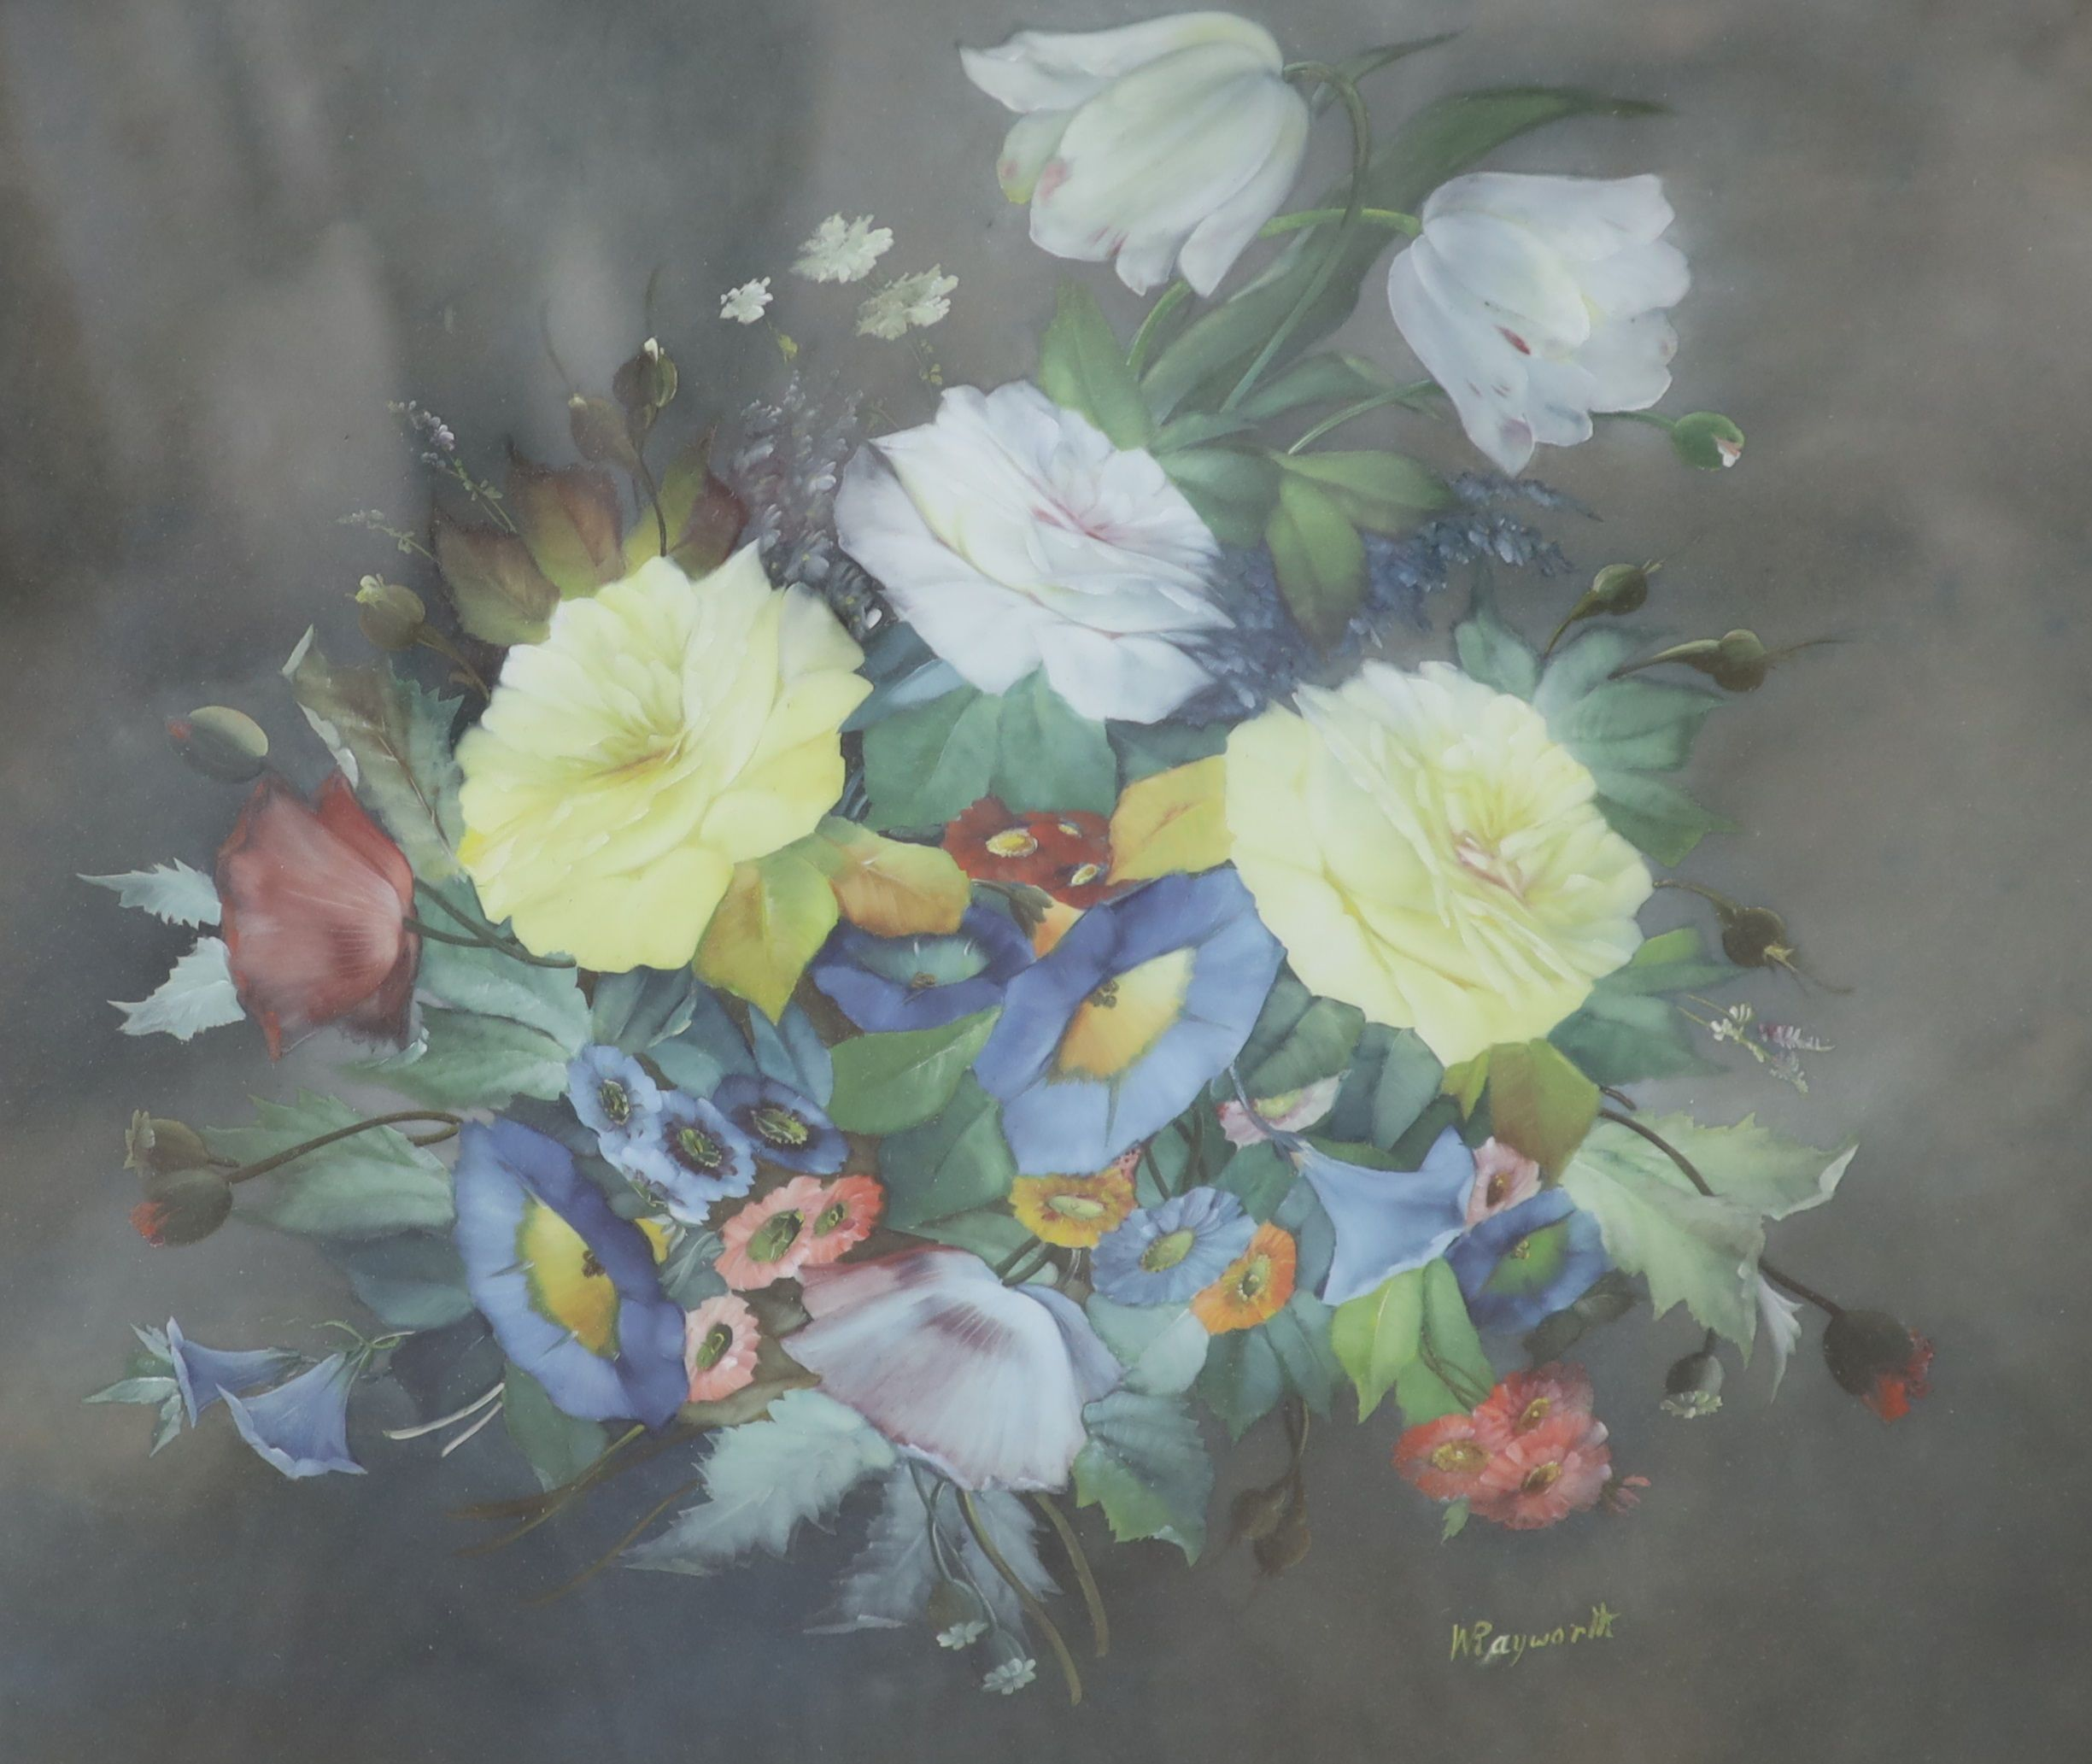 William Rayworth (19th/20th century), oil on opaque glass, 'Still life study of mixed flowers',